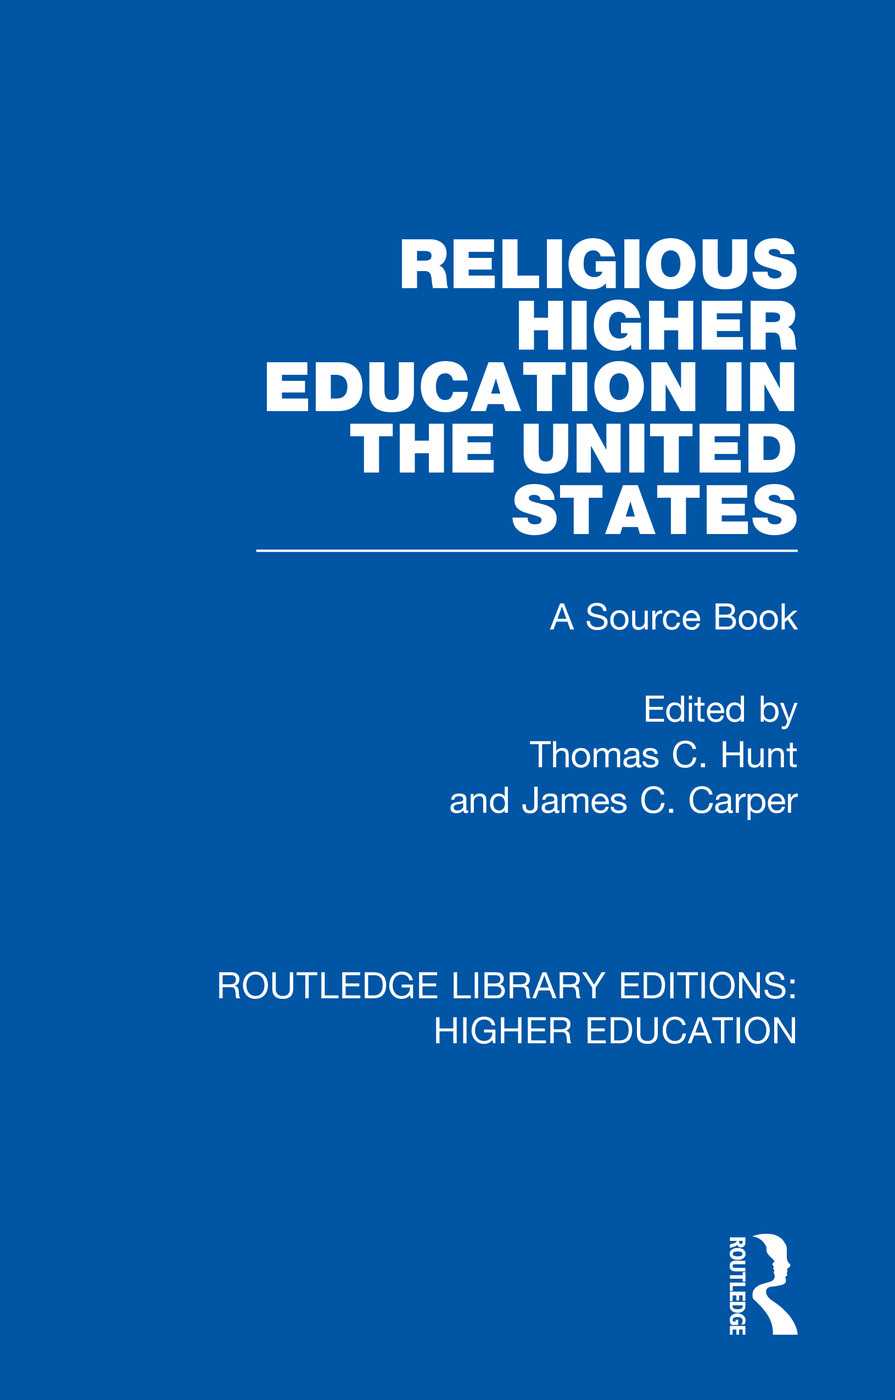 Religious Higher Education in the United States: A Source Book book cover